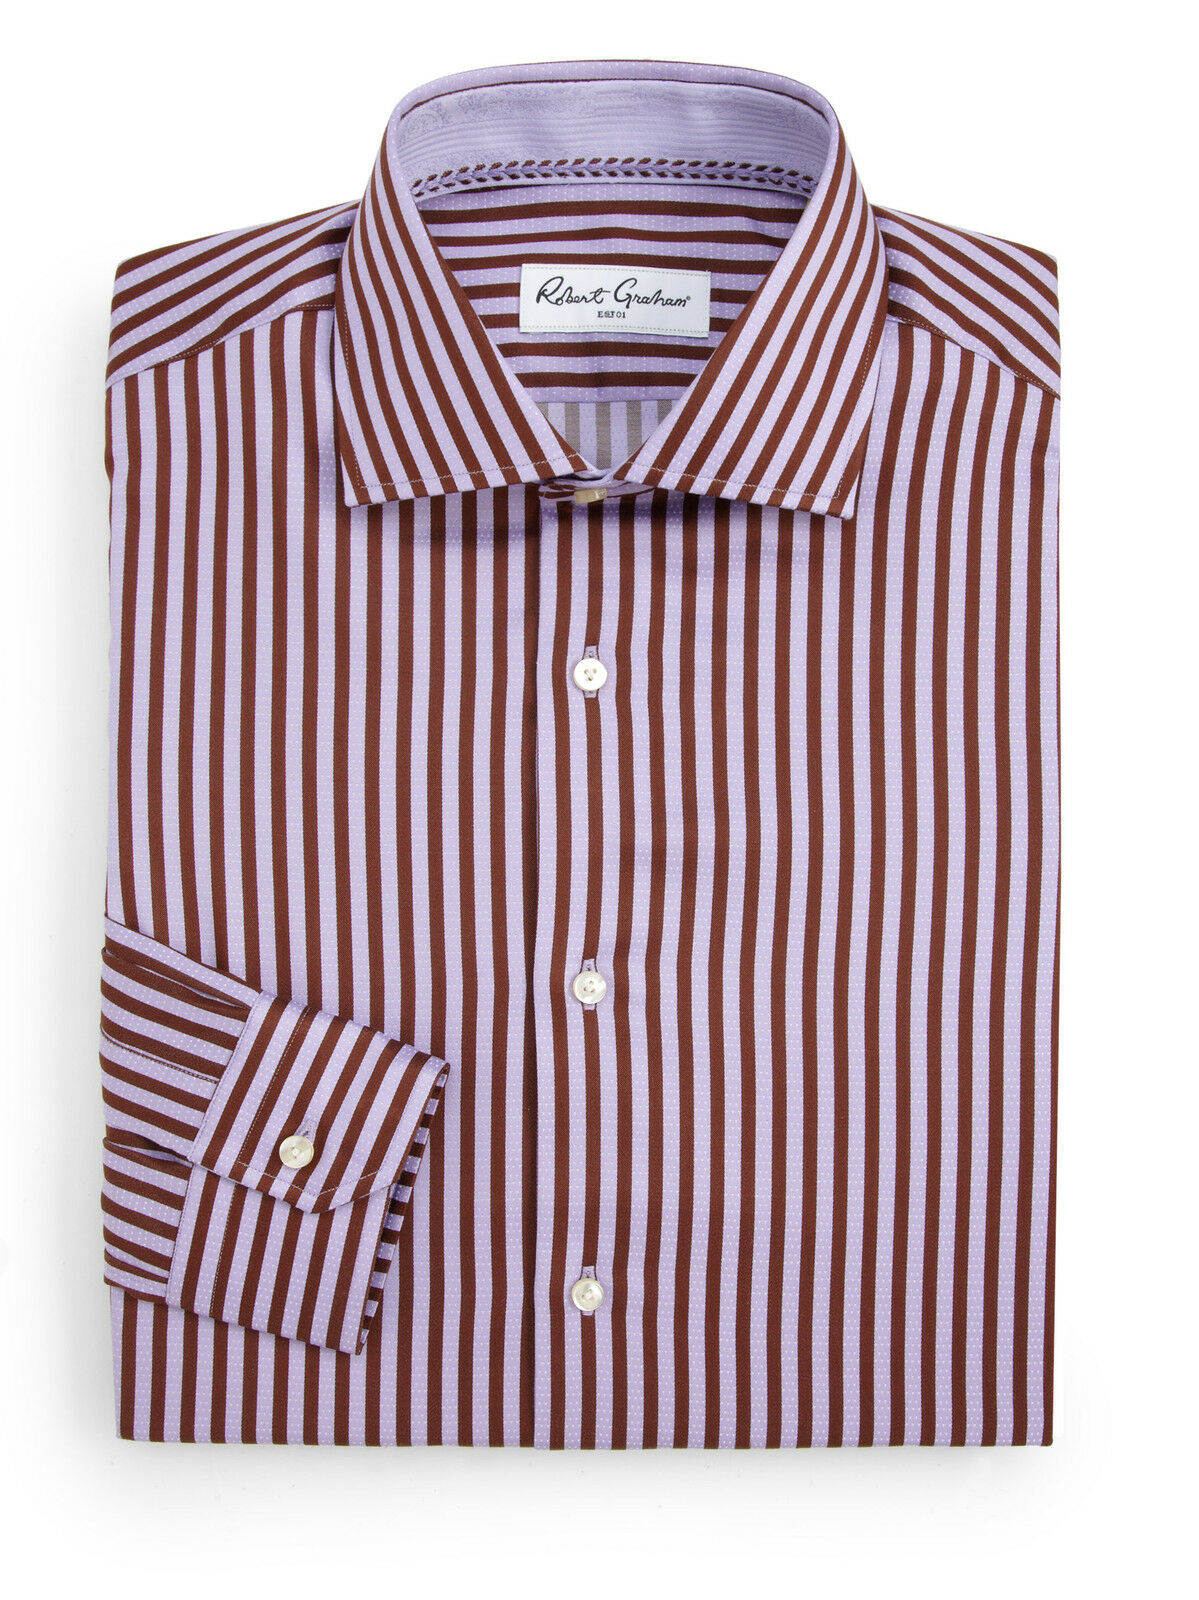 New Robert Graham Rupert RC Dress Shirt Größe 15.5 39 Lavender Striped